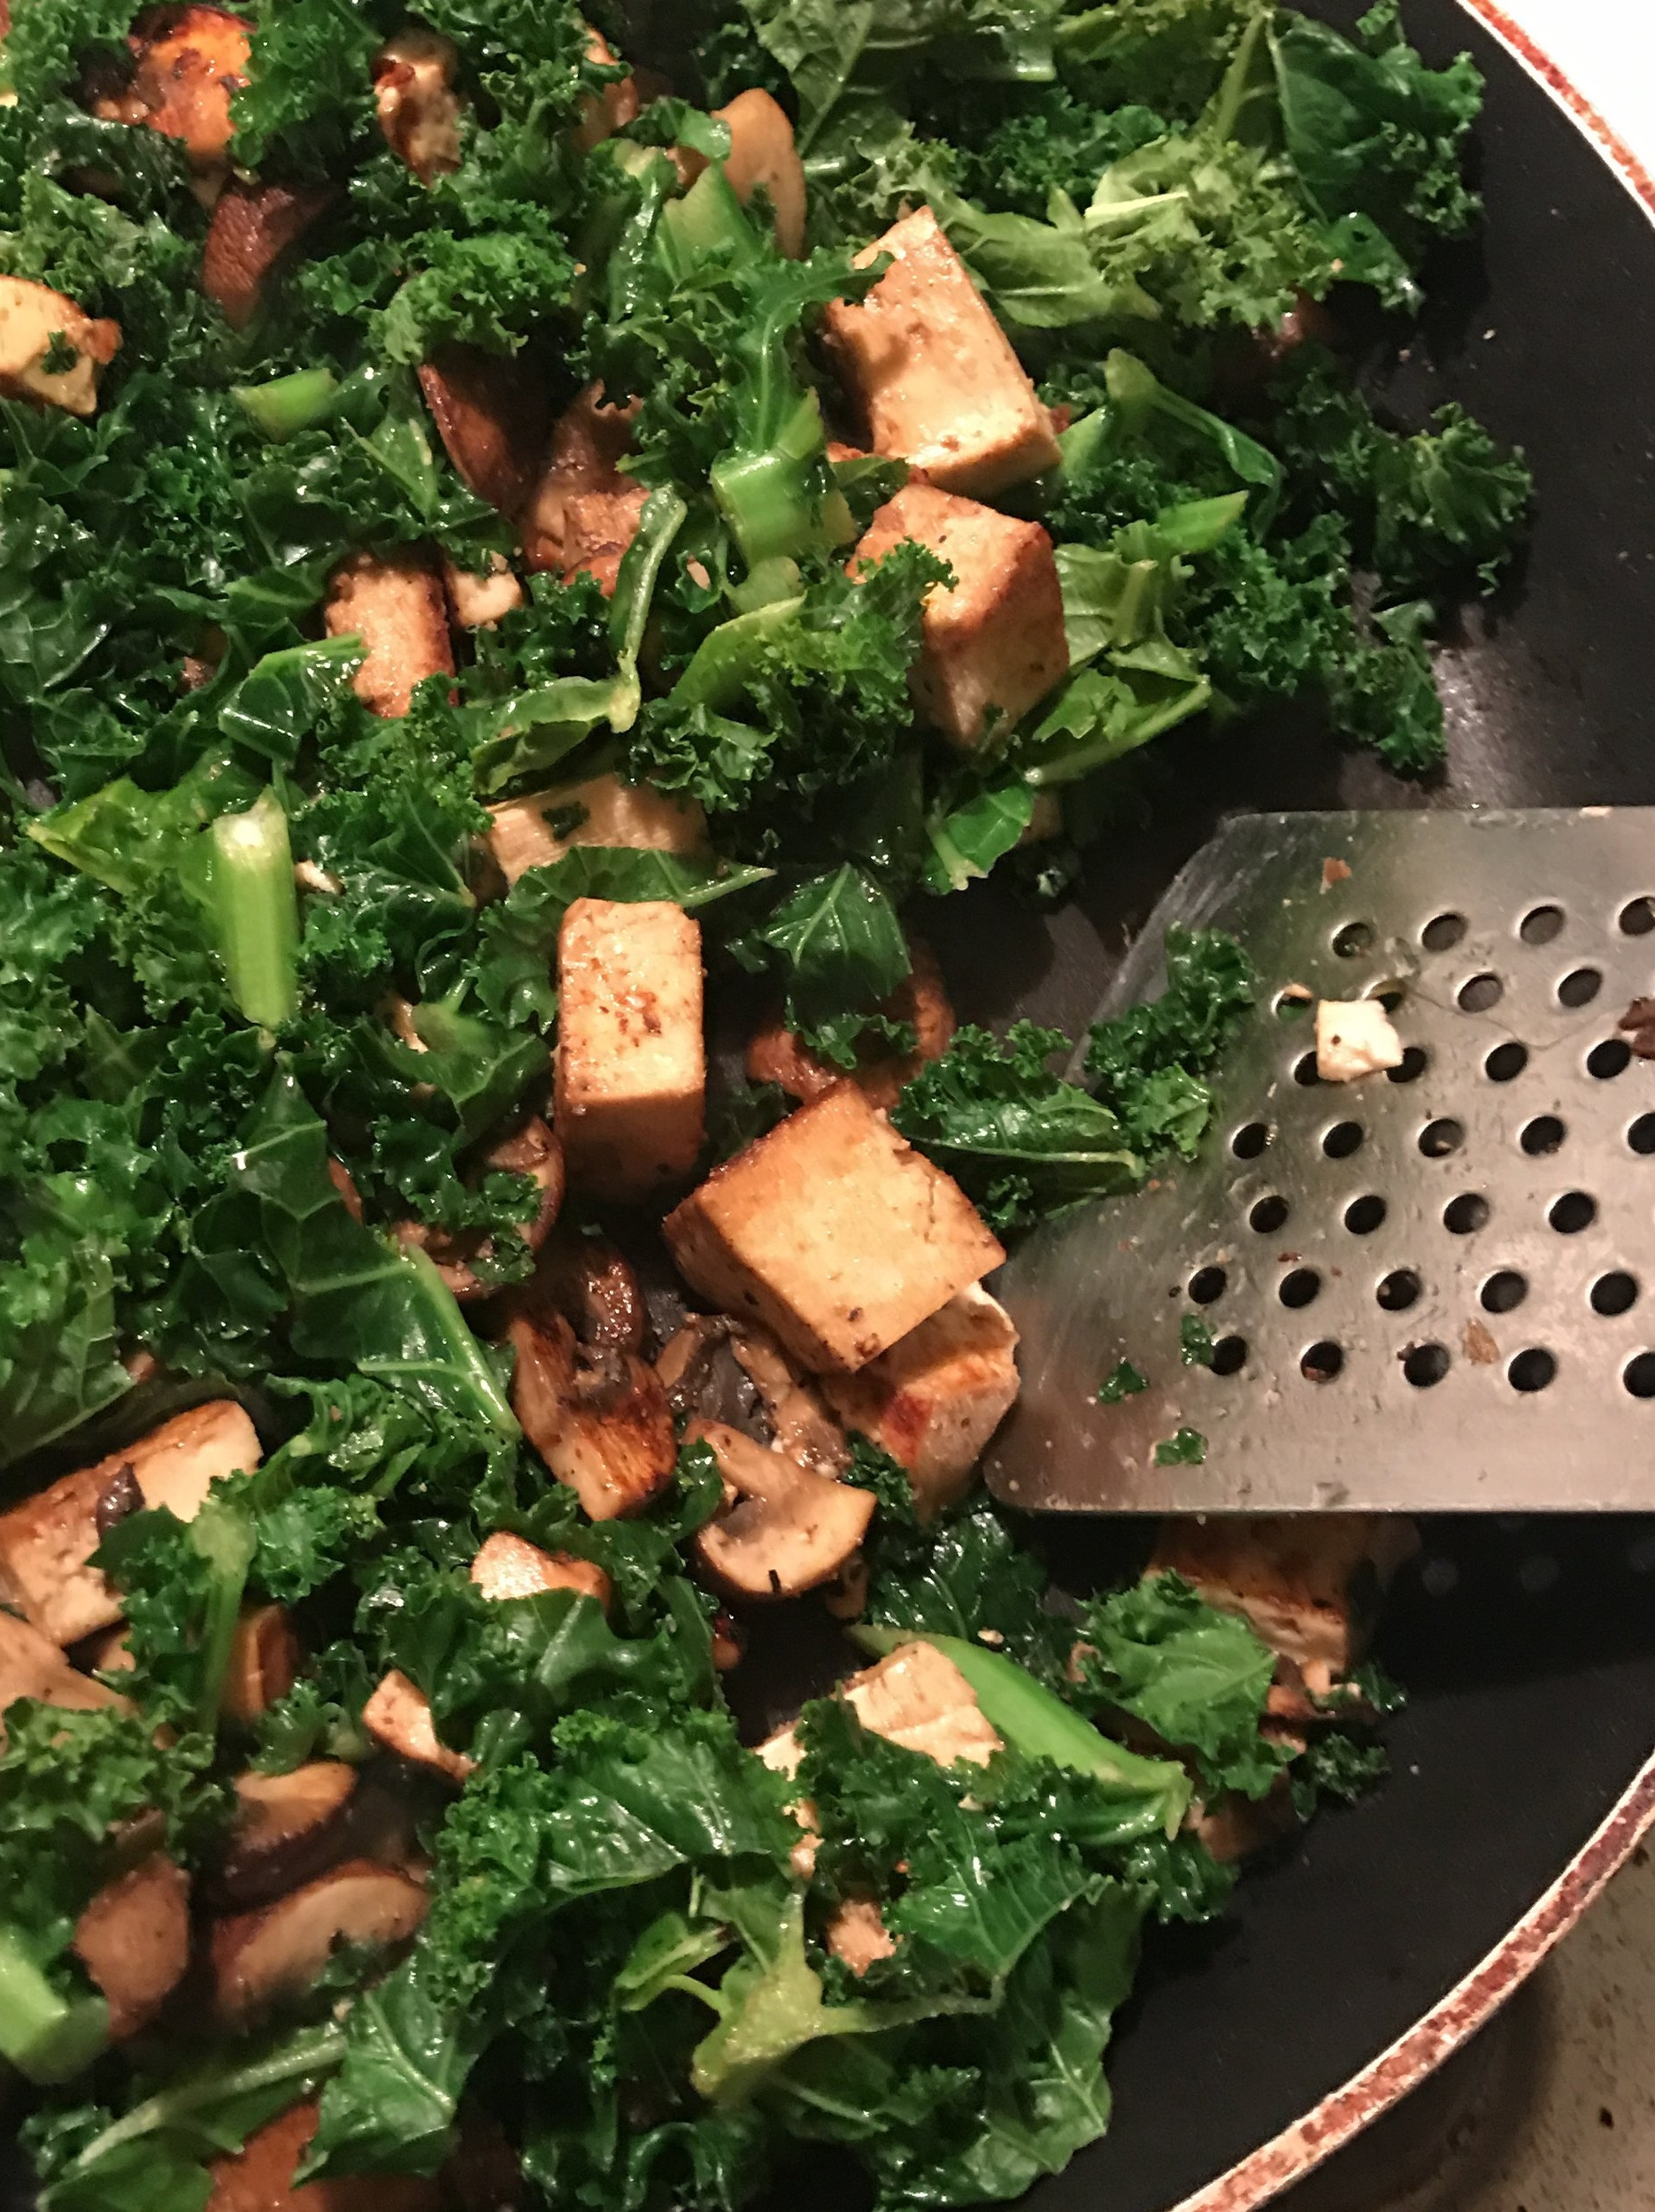 Just kale and tofu